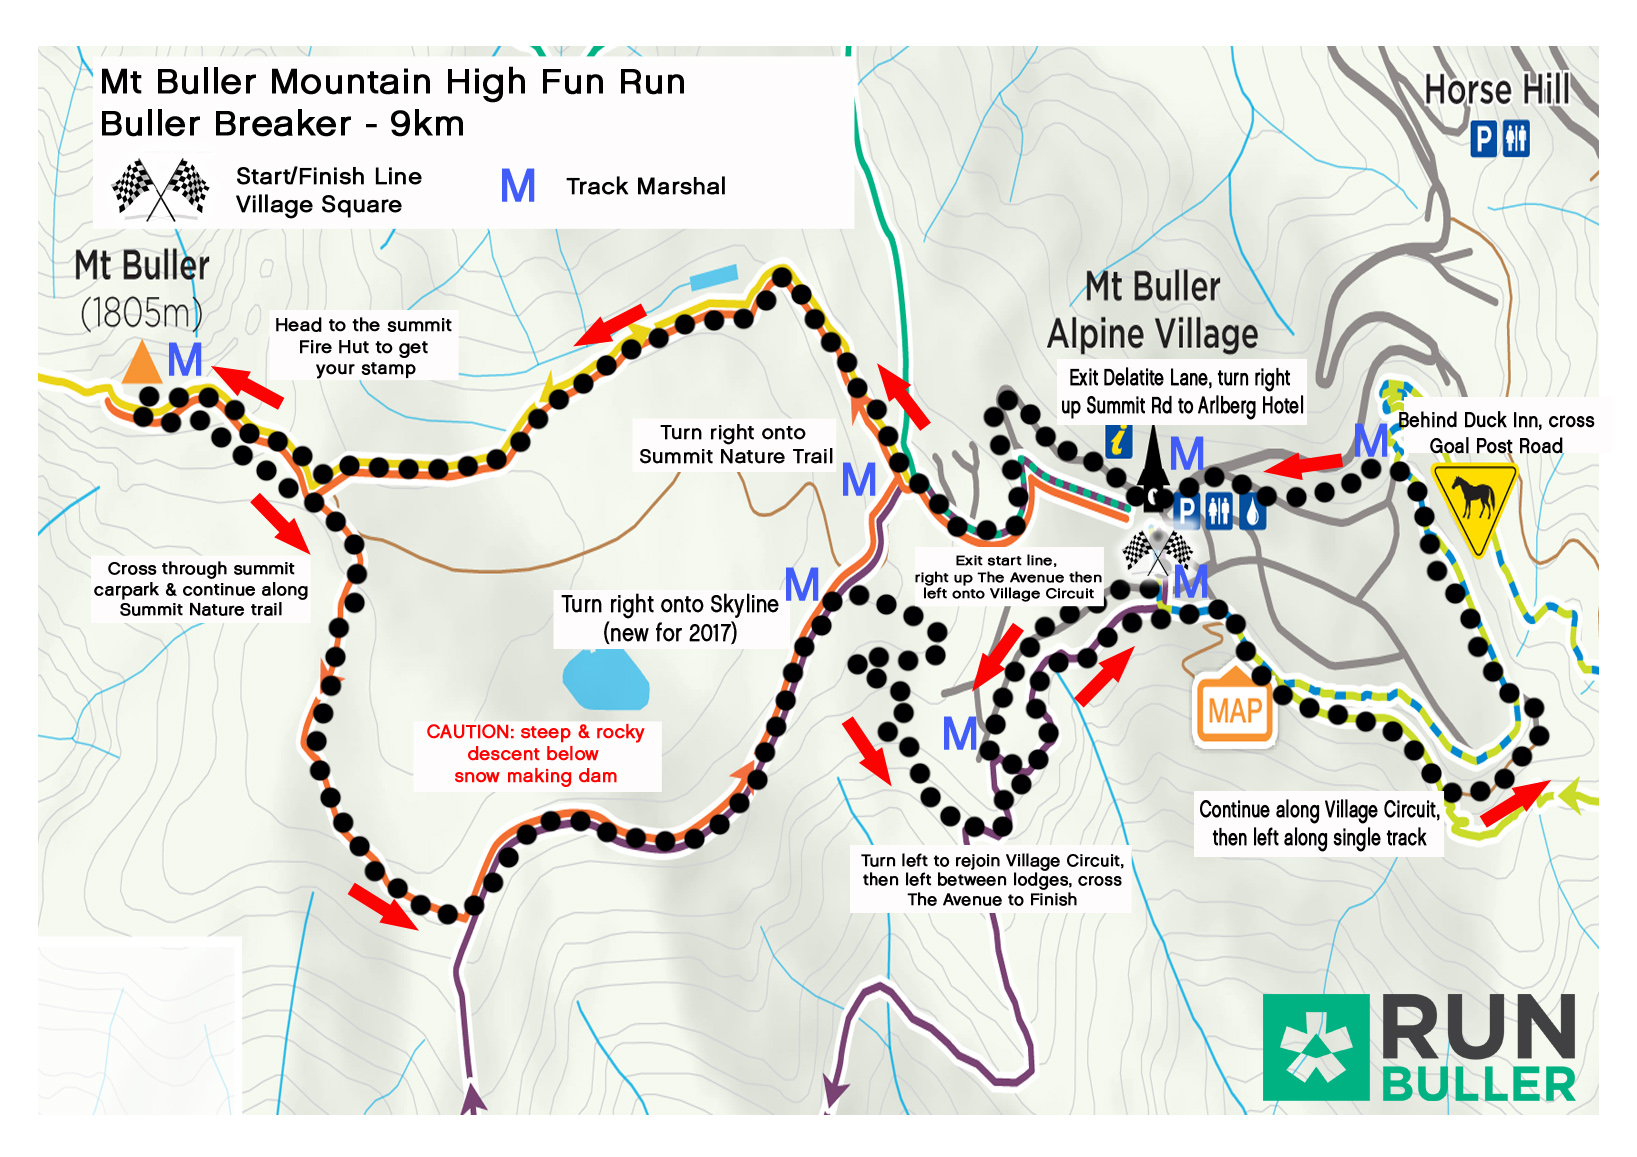 2017 Buller Breaker Course map